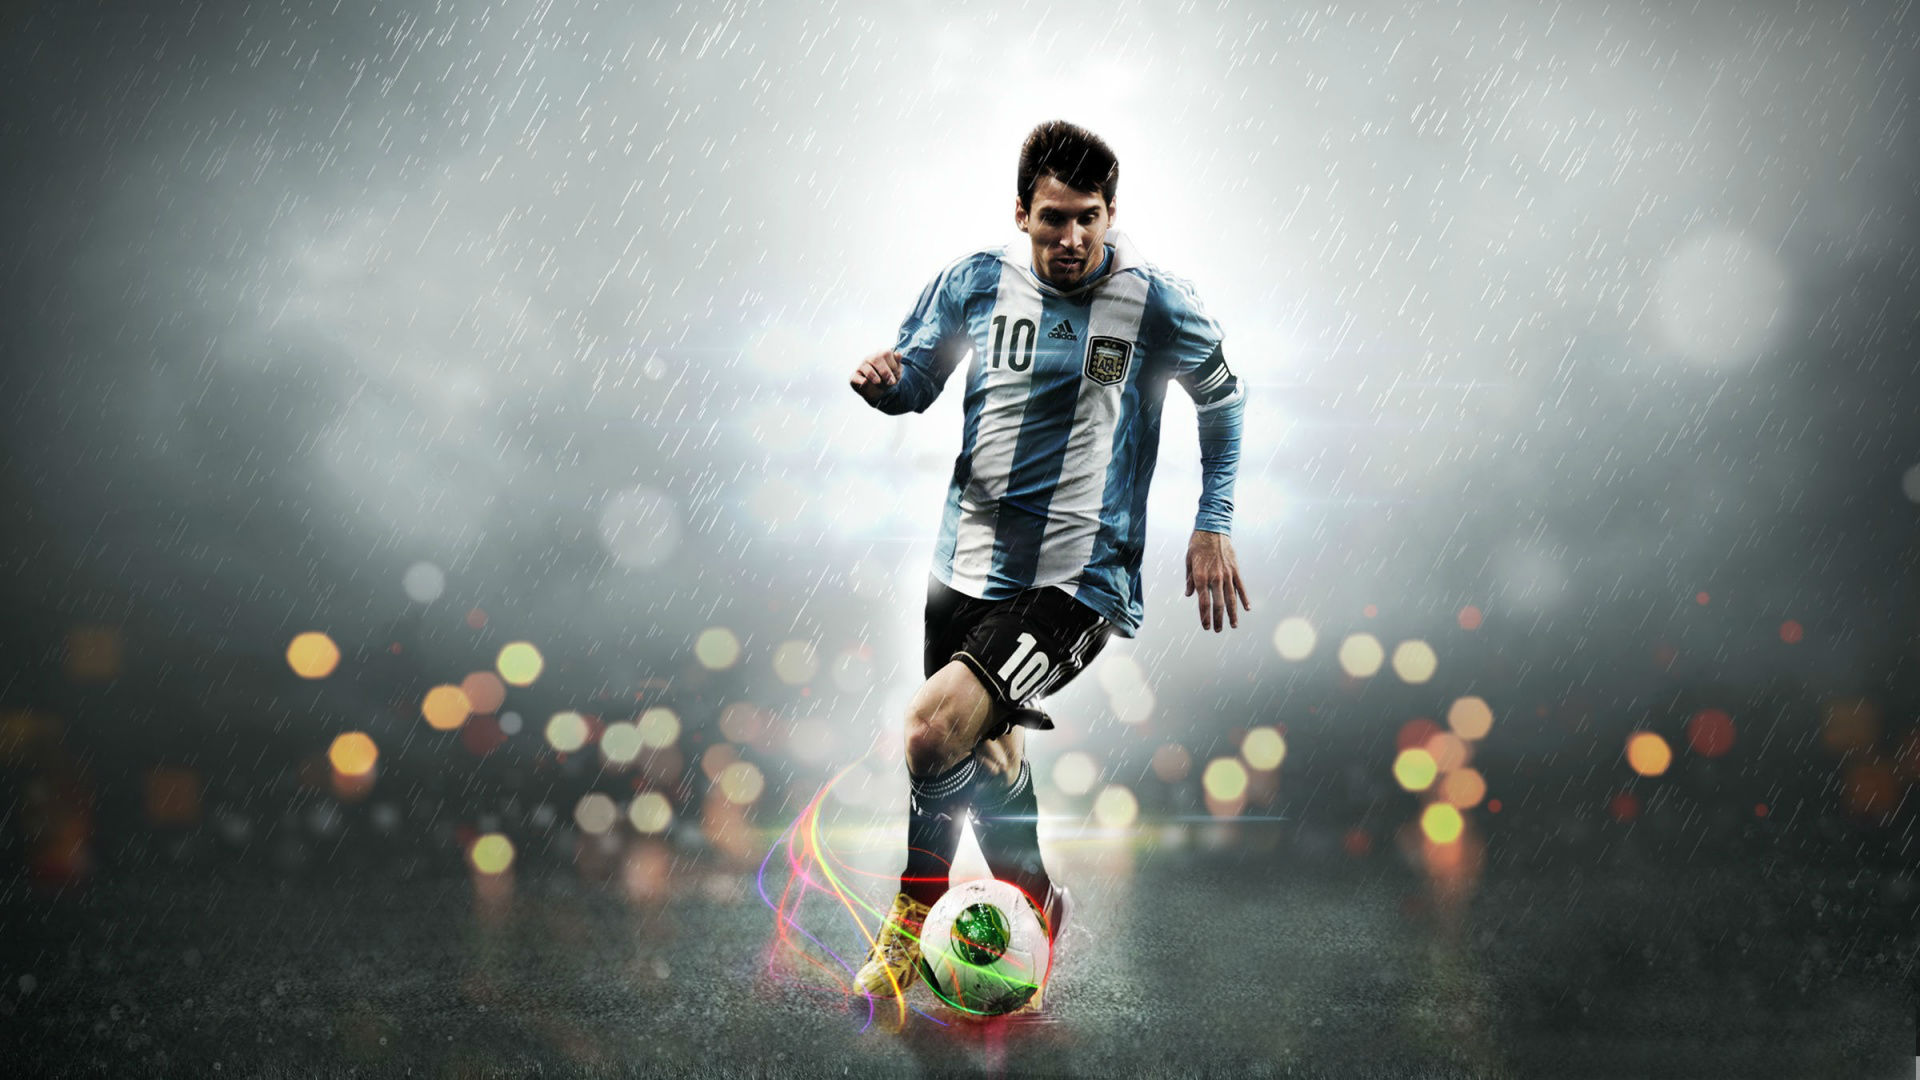 Famous Soccer Messi Football Playing Wallpaper HD 1920x1080